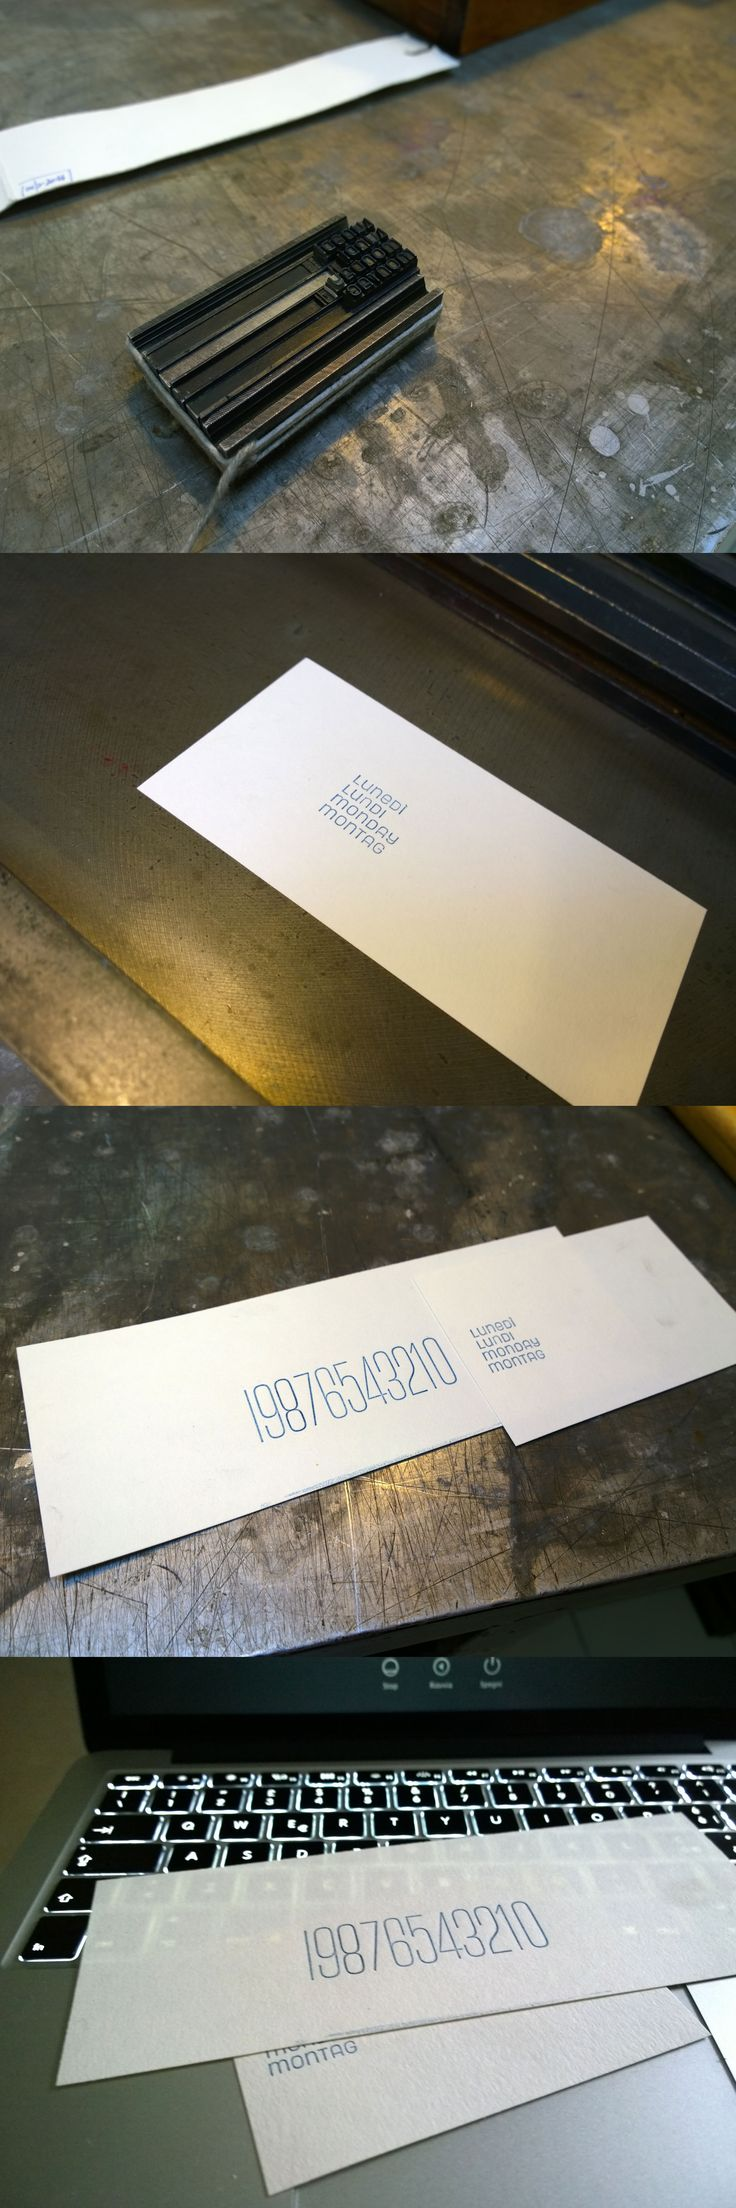 Neon type metal by Nebiolo Foundry. First print test for the perpetual calendar. Limited edition of 50 pcs. Soon available.